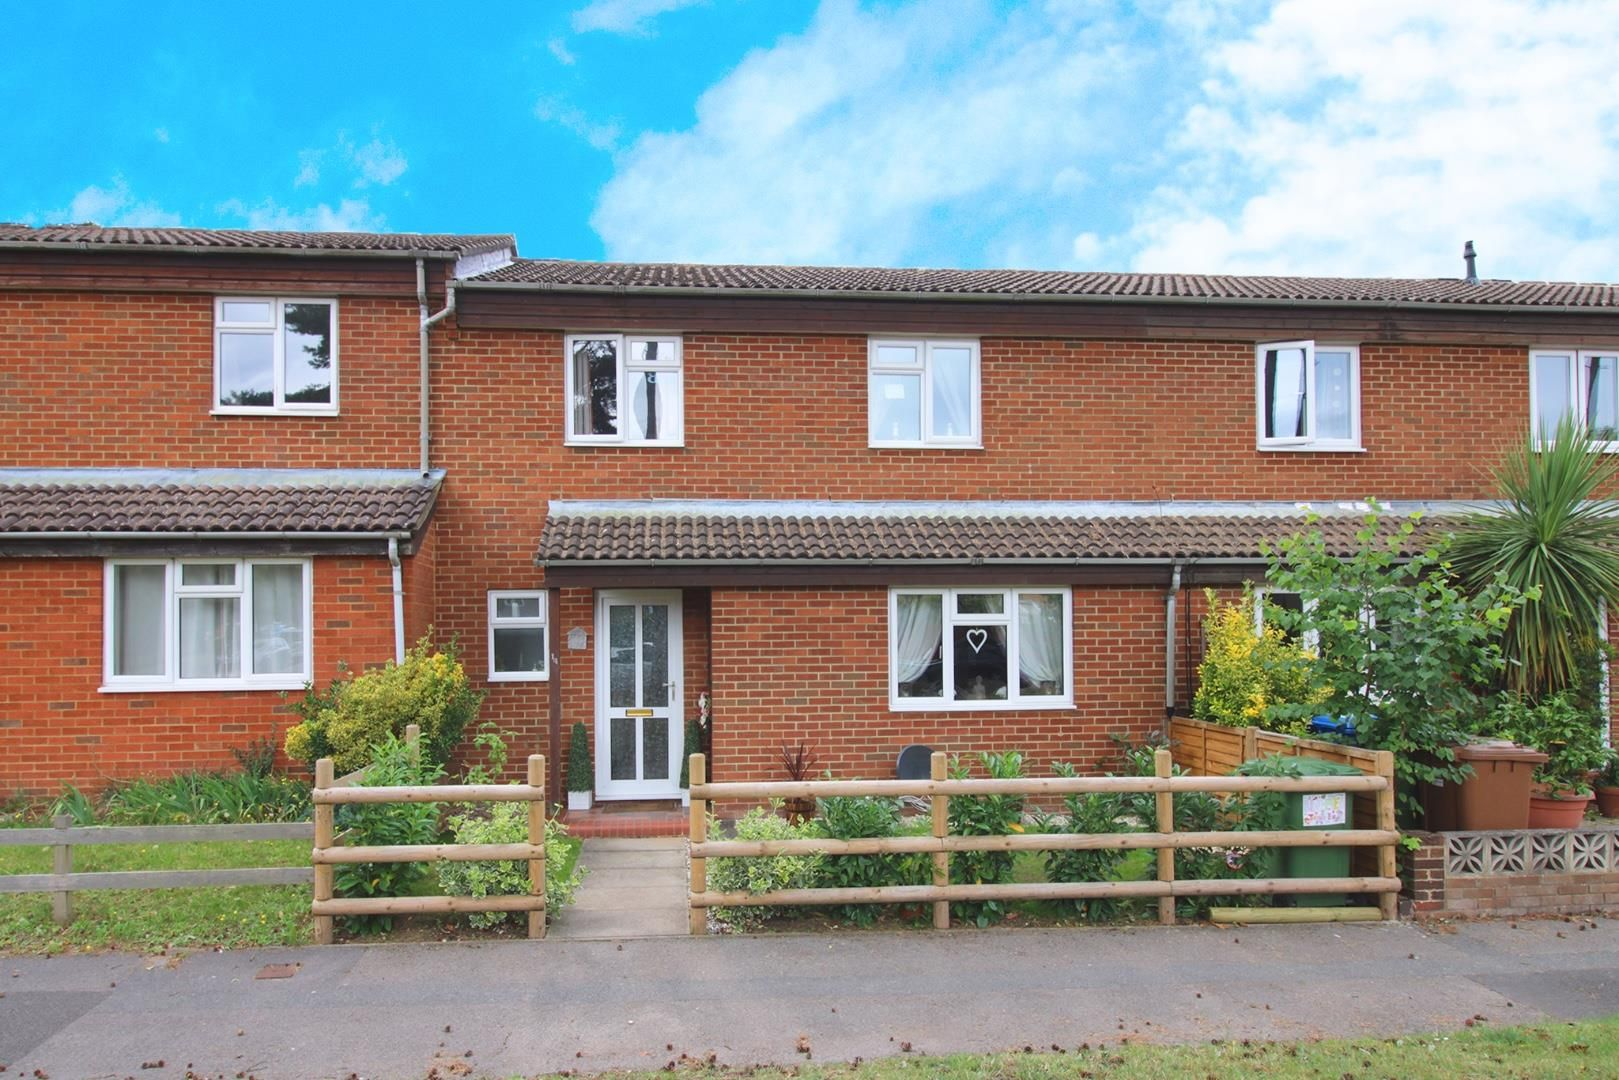 3 bed house for sale in Crown Wood - Property Image 1